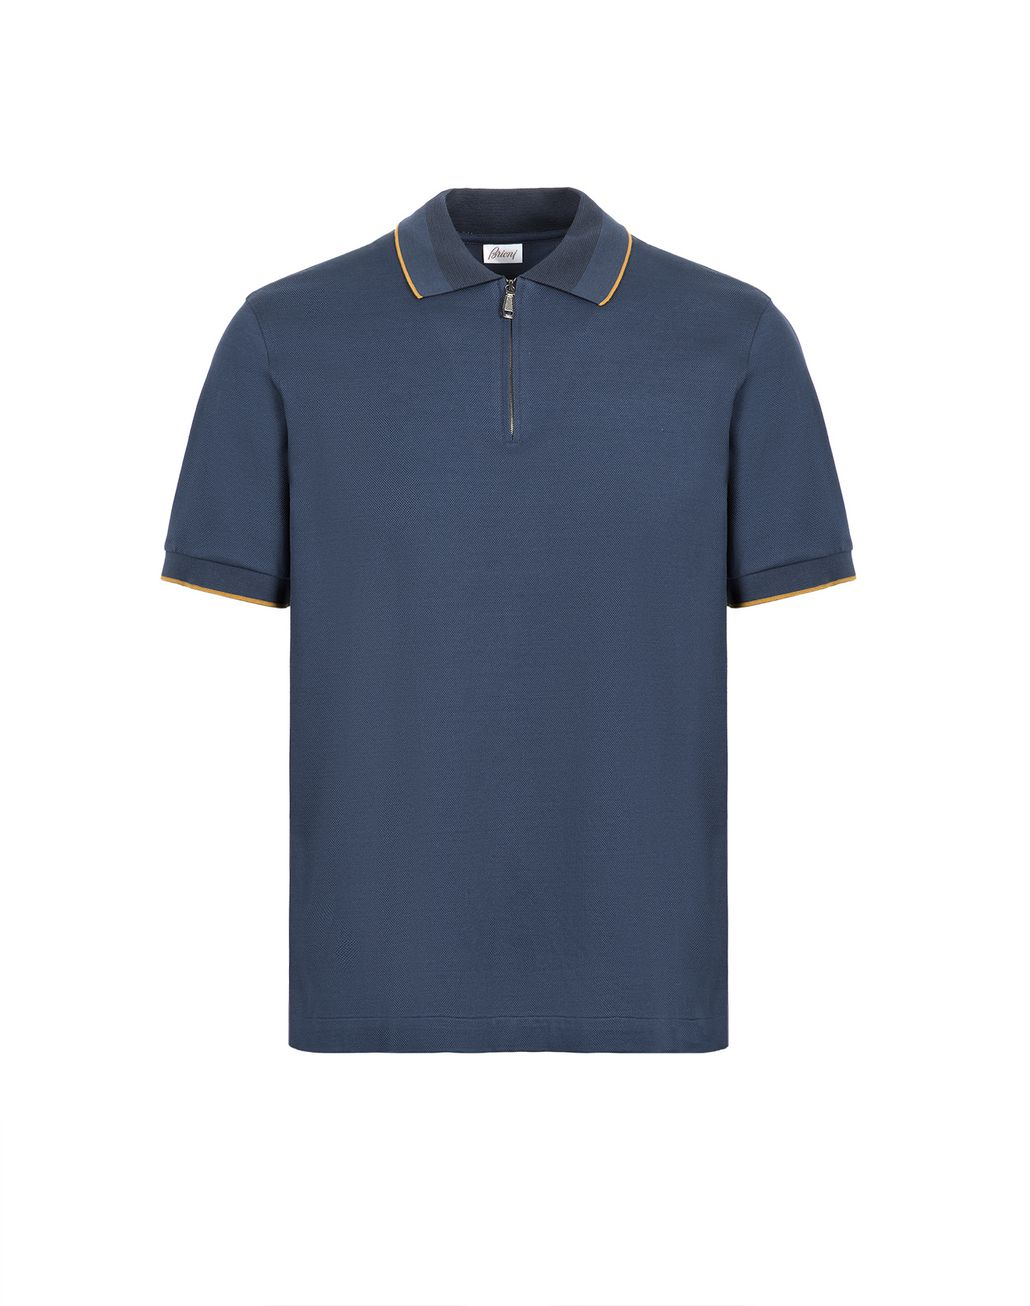 BRIONI Navy-Blue Zippered Polo Shirt with Mustard Details T-Shirts & Polos Man f